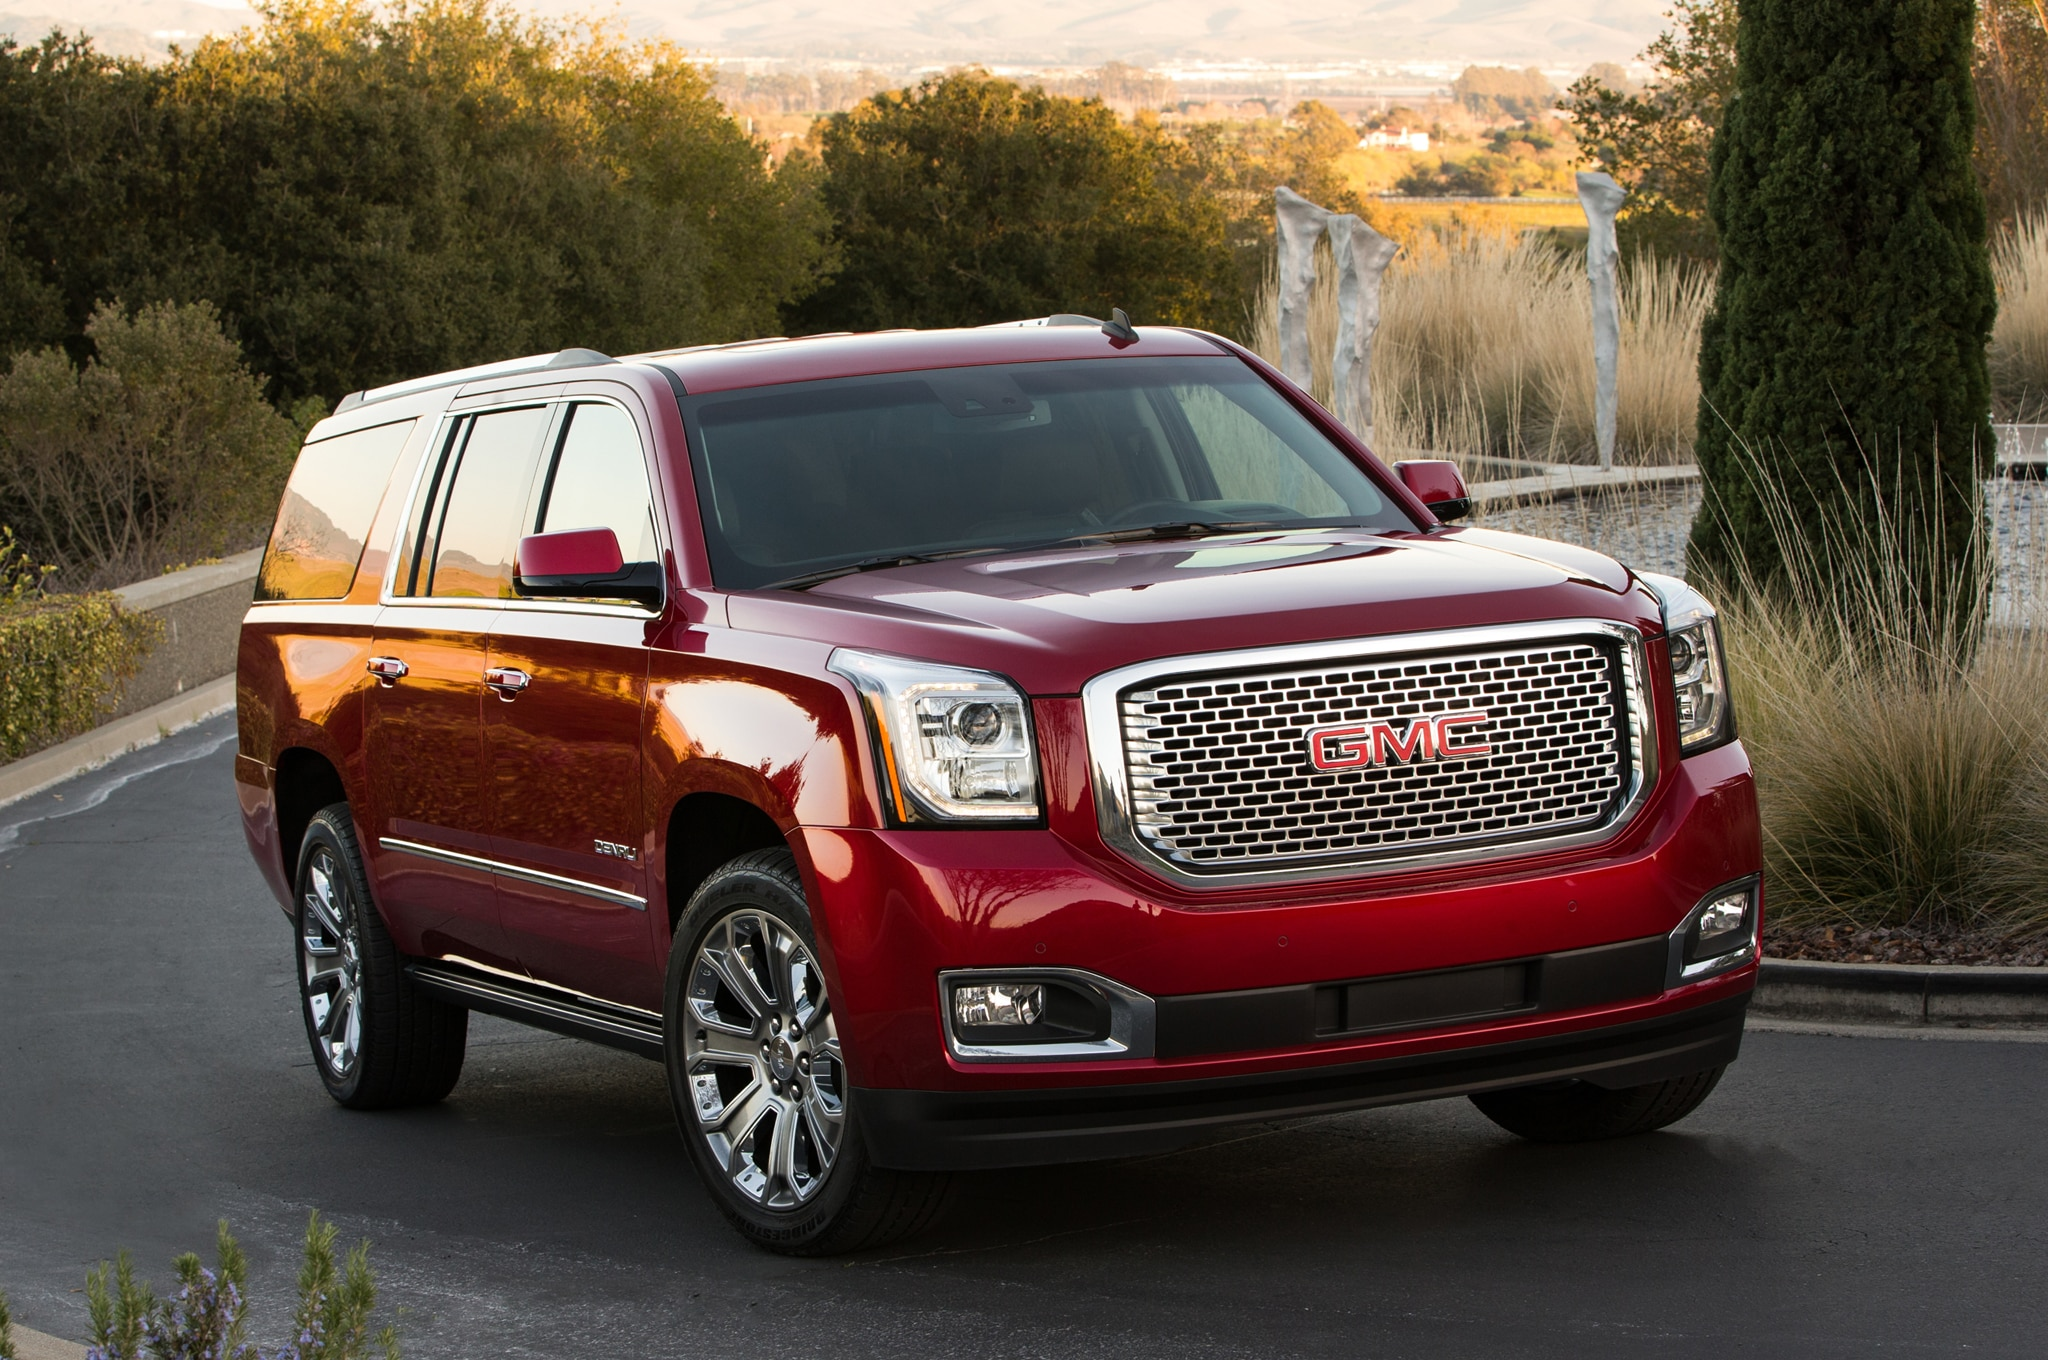 2015 gmc sierra yukon denali fuel economy improves with. Black Bedroom Furniture Sets. Home Design Ideas